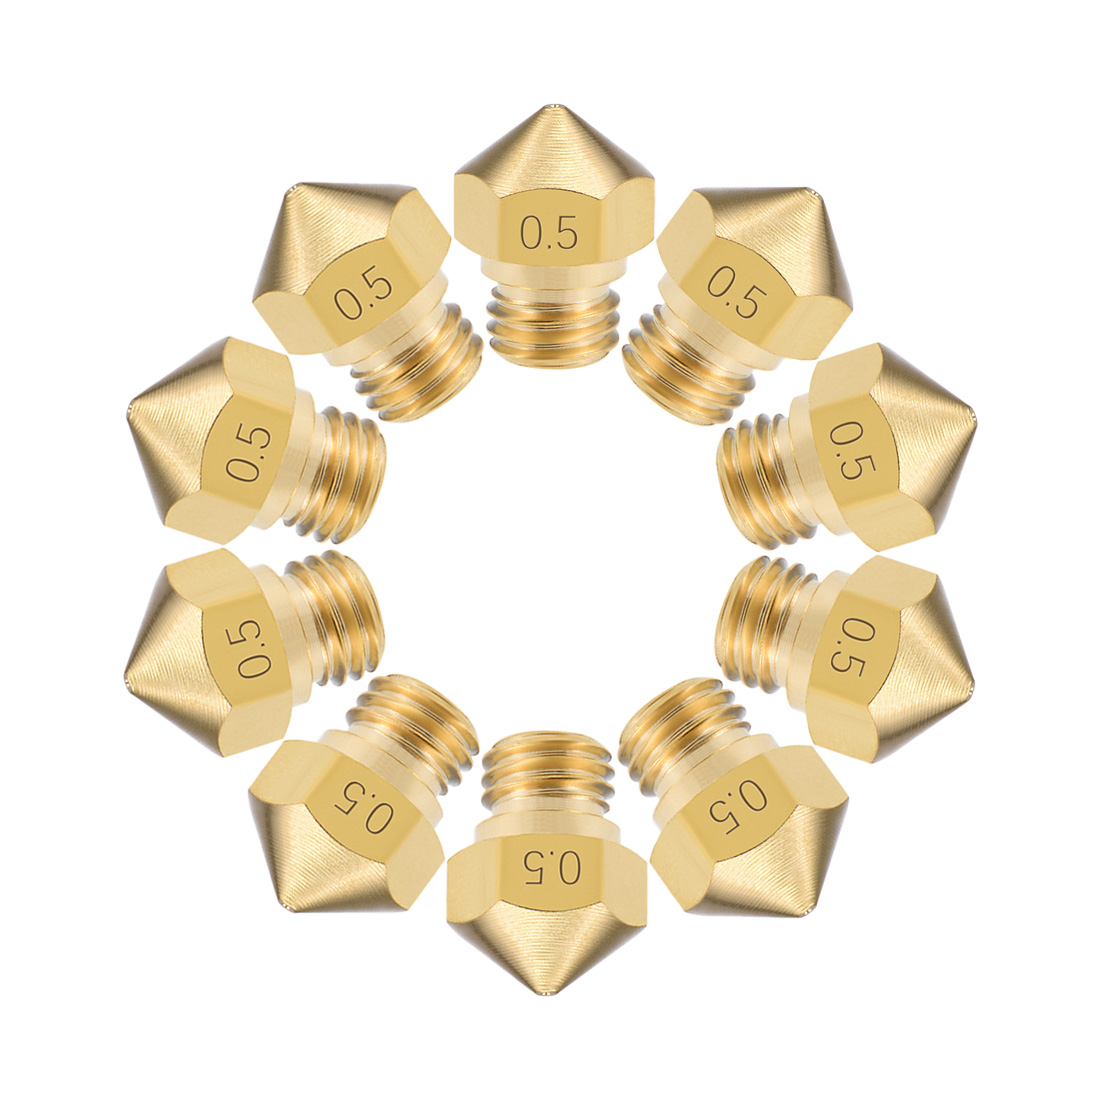 0.5mm 3D Printer Nozzle Head M7 Thread MK10 1.75mm Extruder Print, Brass 10pcs